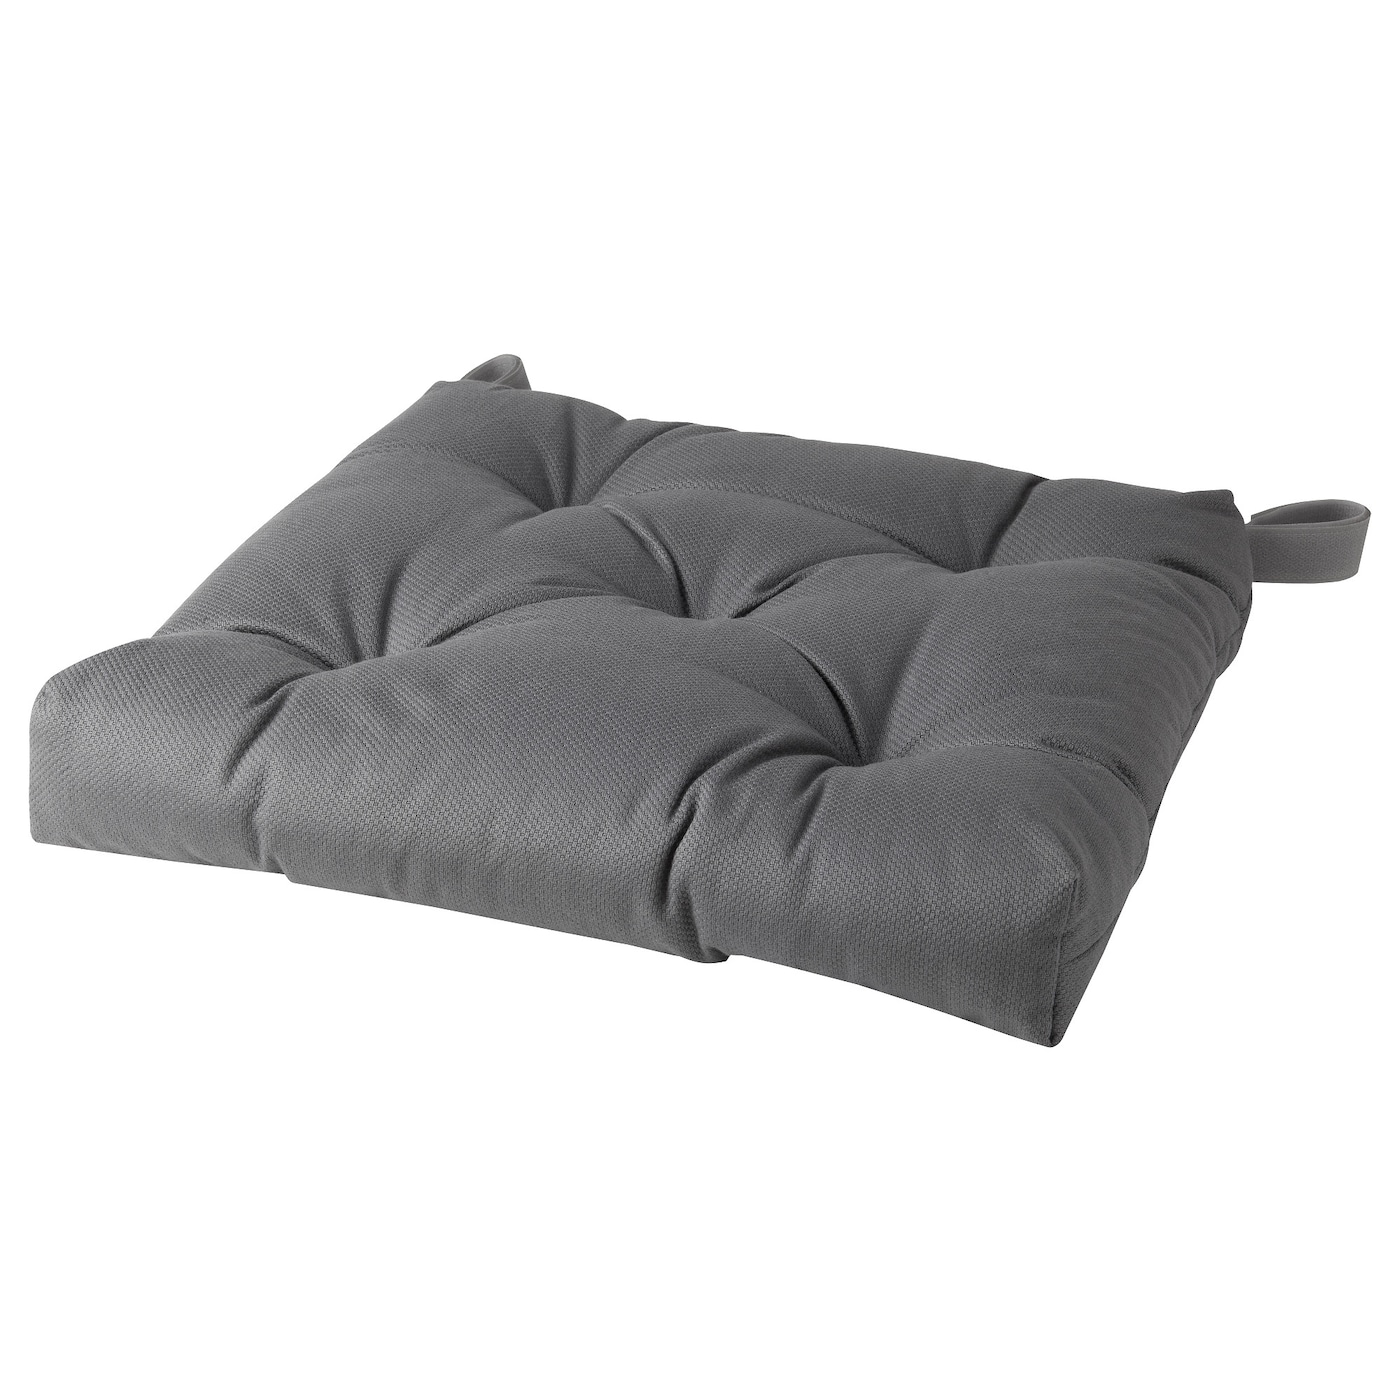 MALINDA Chair cushion Grey 40 35x38x7 cm IKEA